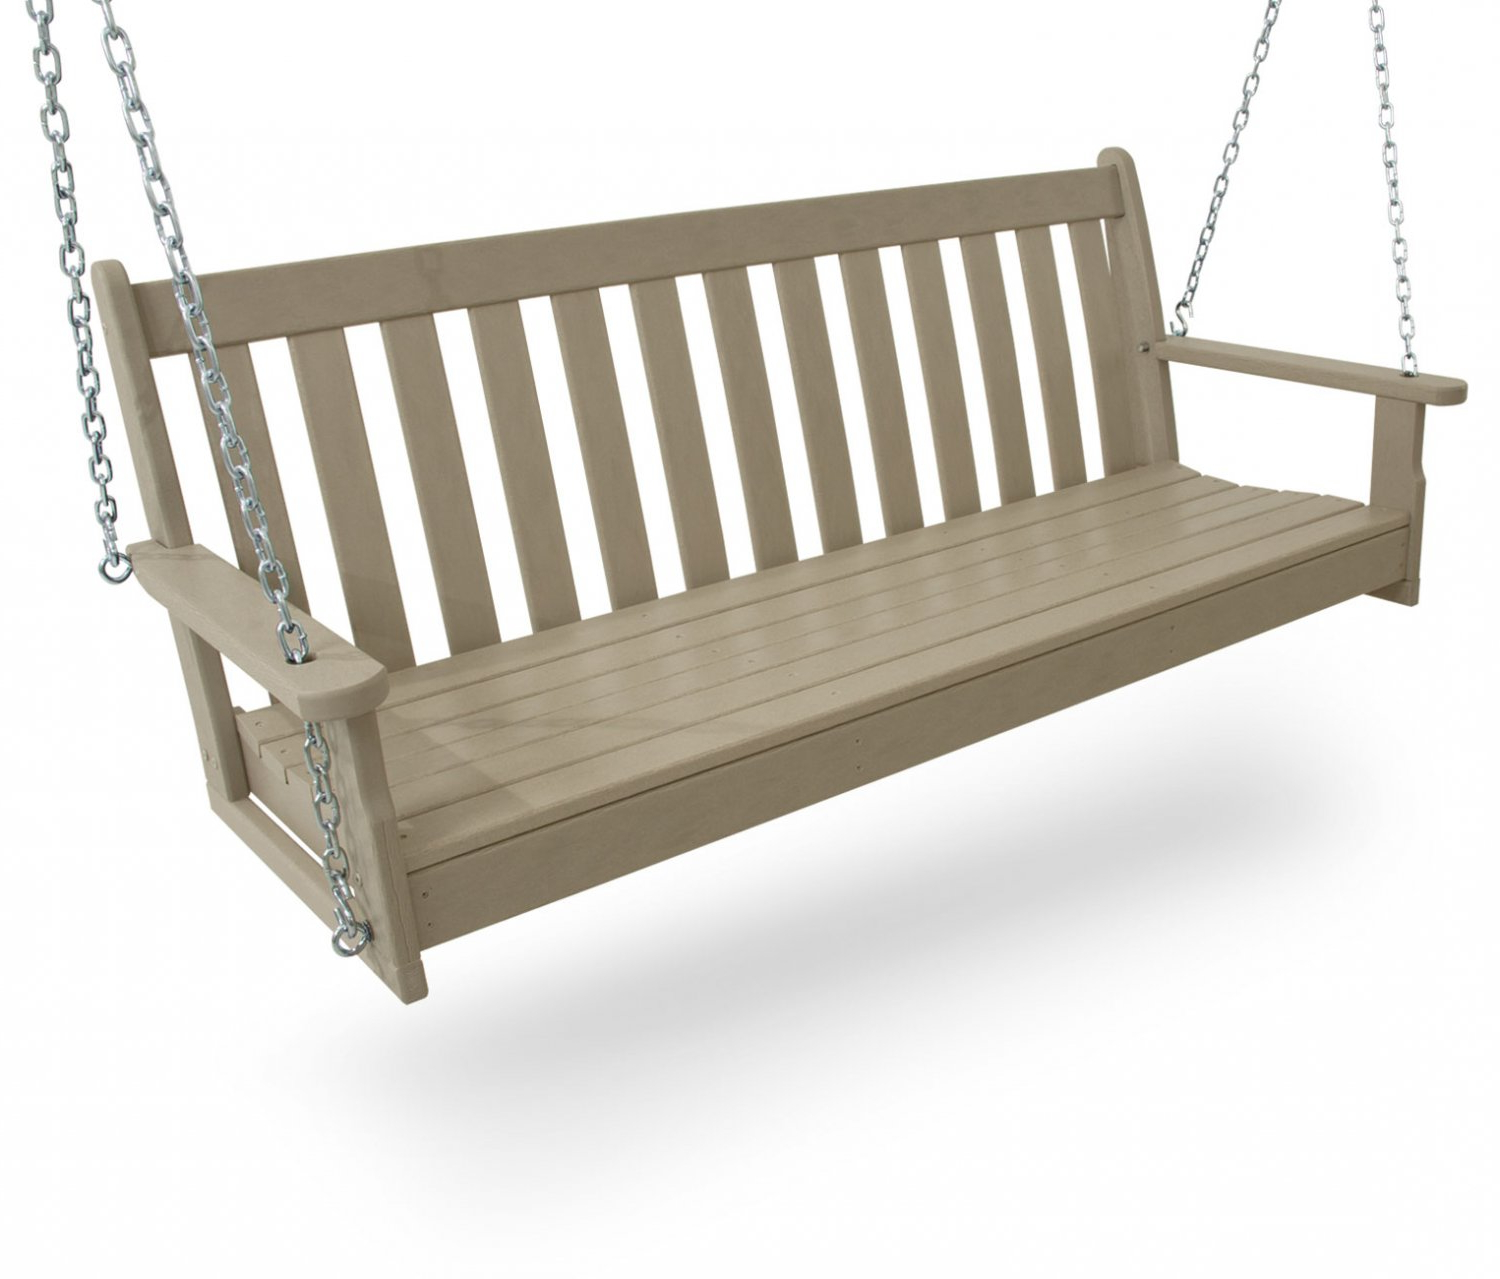 Popular Vineyard Swing 150 Cms, Hdpe Plastic Lumber, Sand, W/chains Inside Porch Swings With Chain (View 30 of 30)